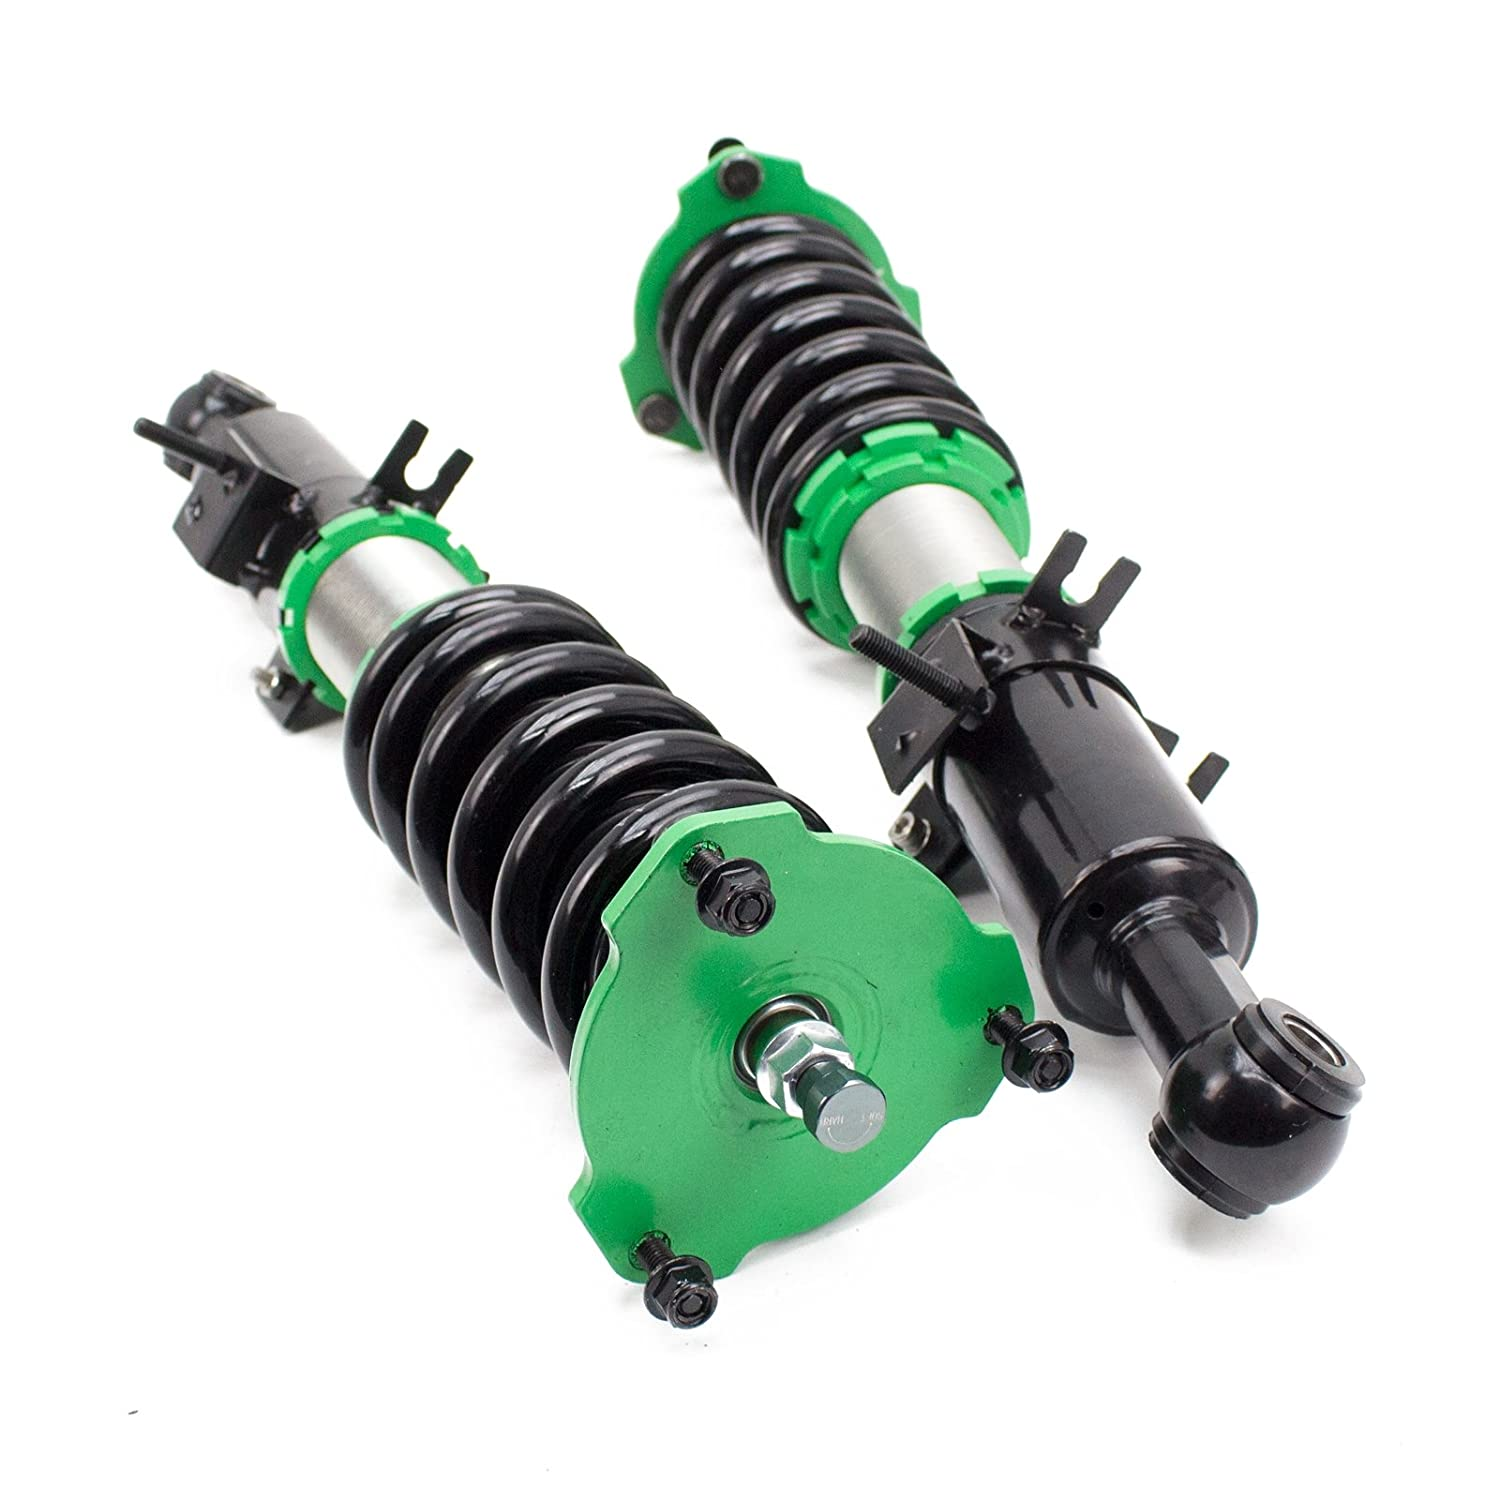 R9-HS2-048/_2 made for Infiniti G37 Coupe//Sedan 2008-13 Hyper-Street II Coilovers Lowering Kit by Rev9 32 Damping Level Adjustment